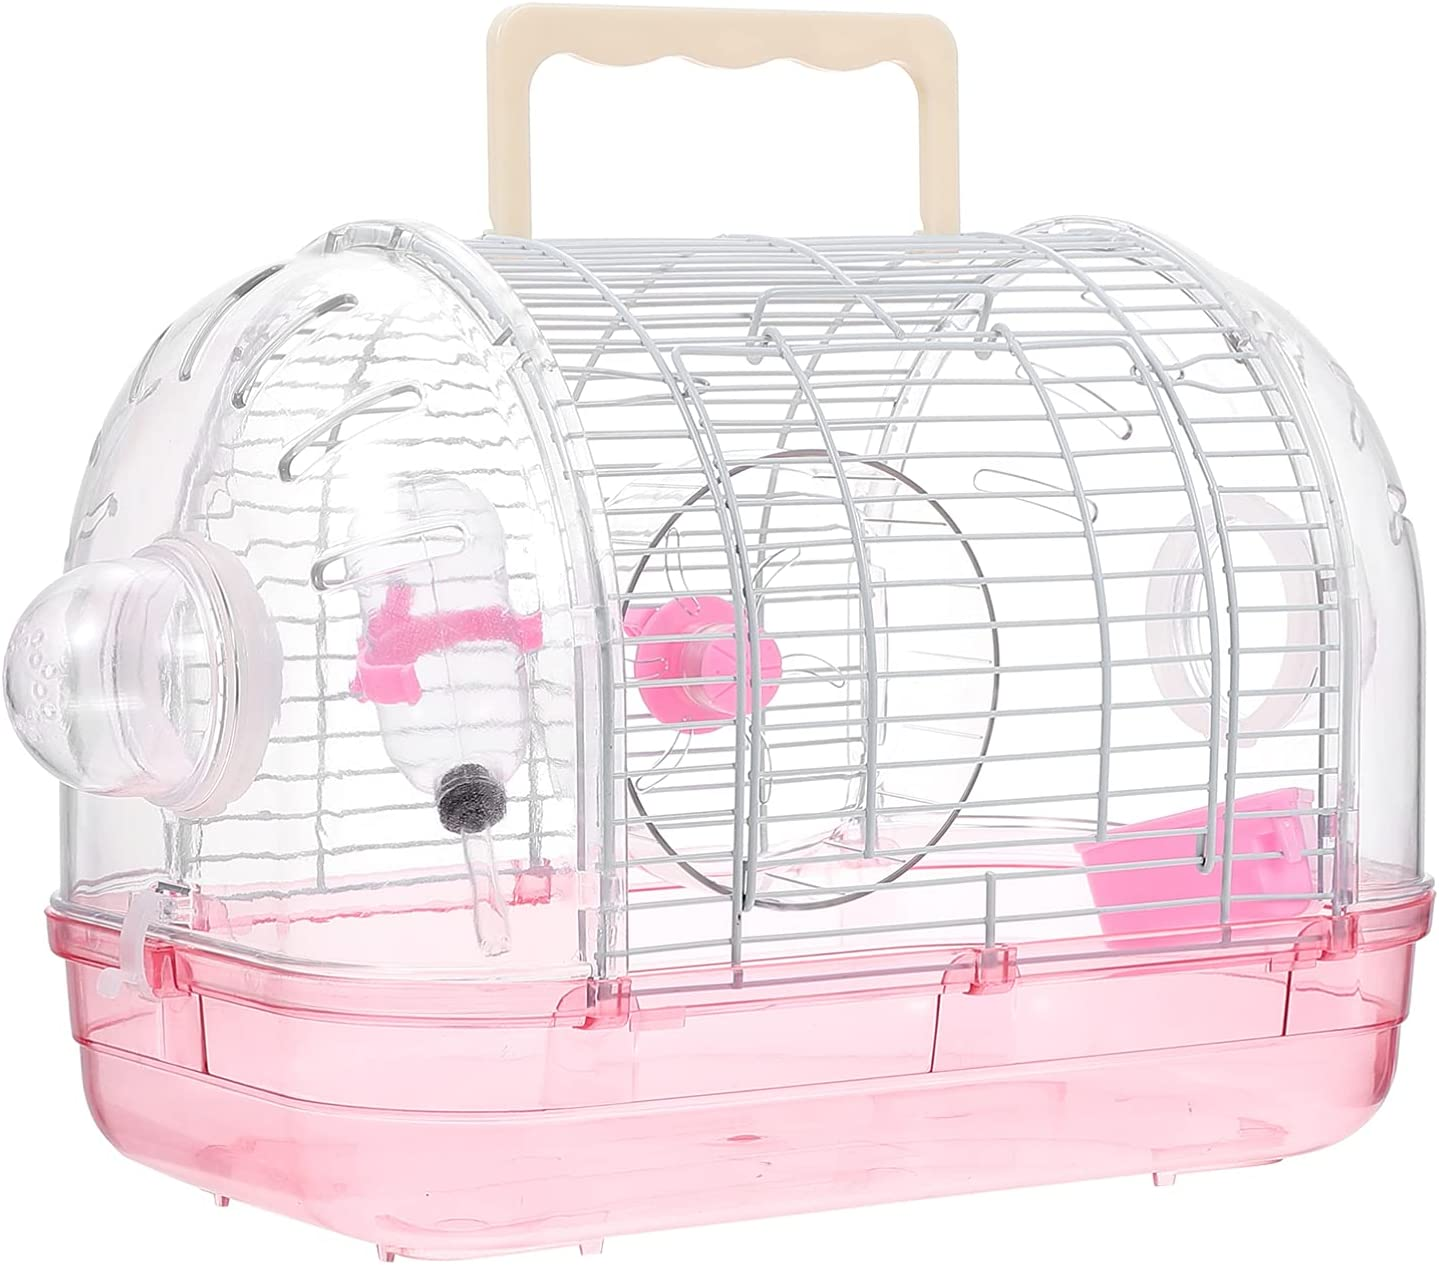 POPETPOP Transparent Hamster Cage Shipping included Pet Hamst Animal Hideout Max 44% OFF Small